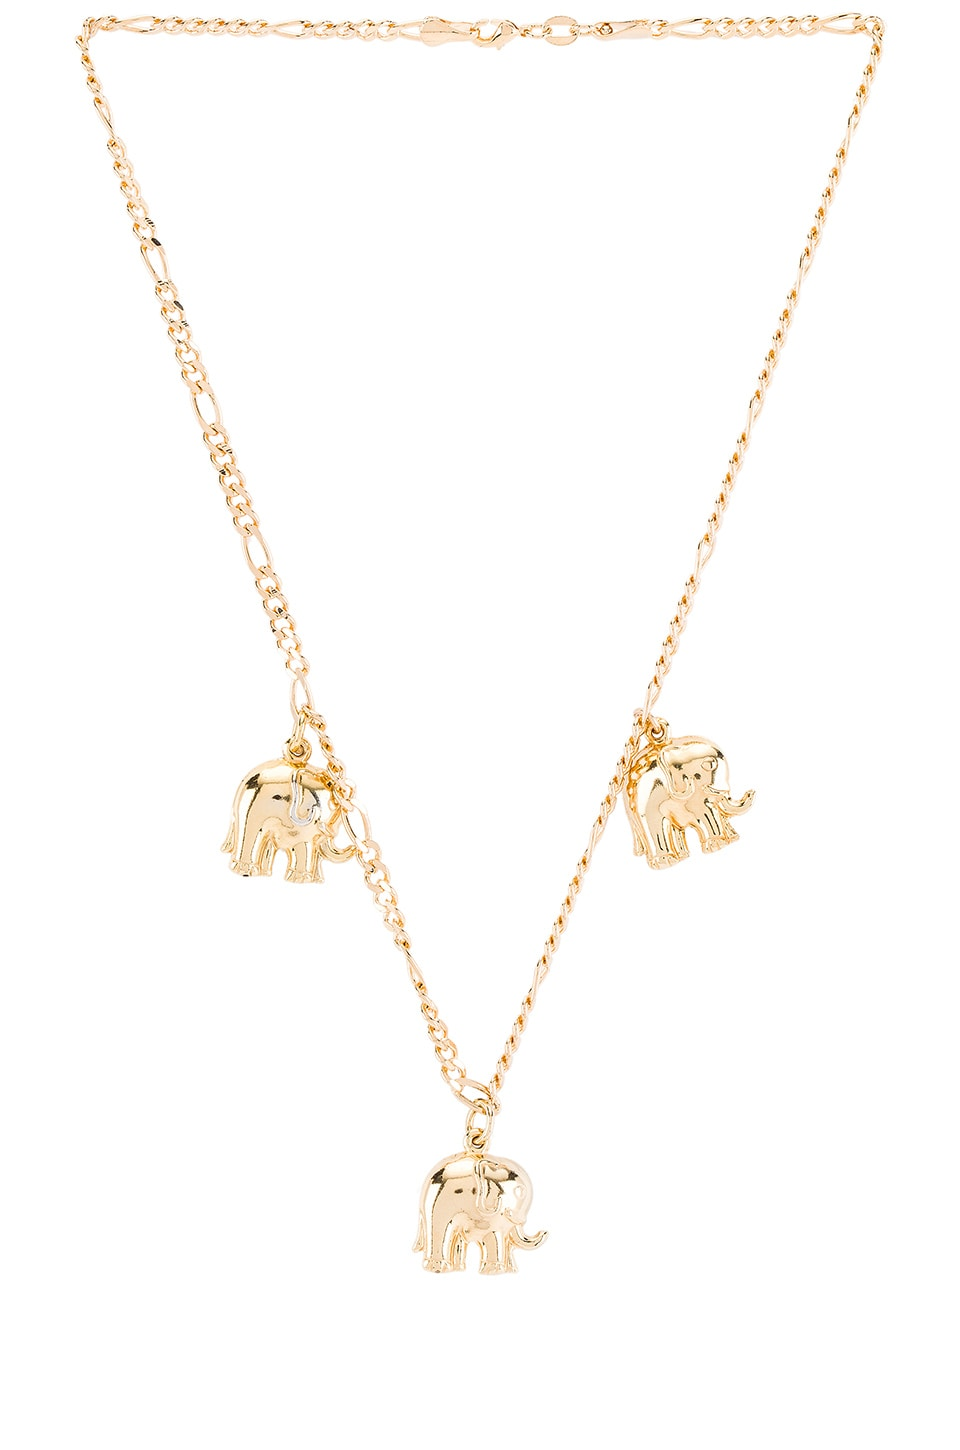 joolz by Martha Calvo Just My Luck Necklace in Gold